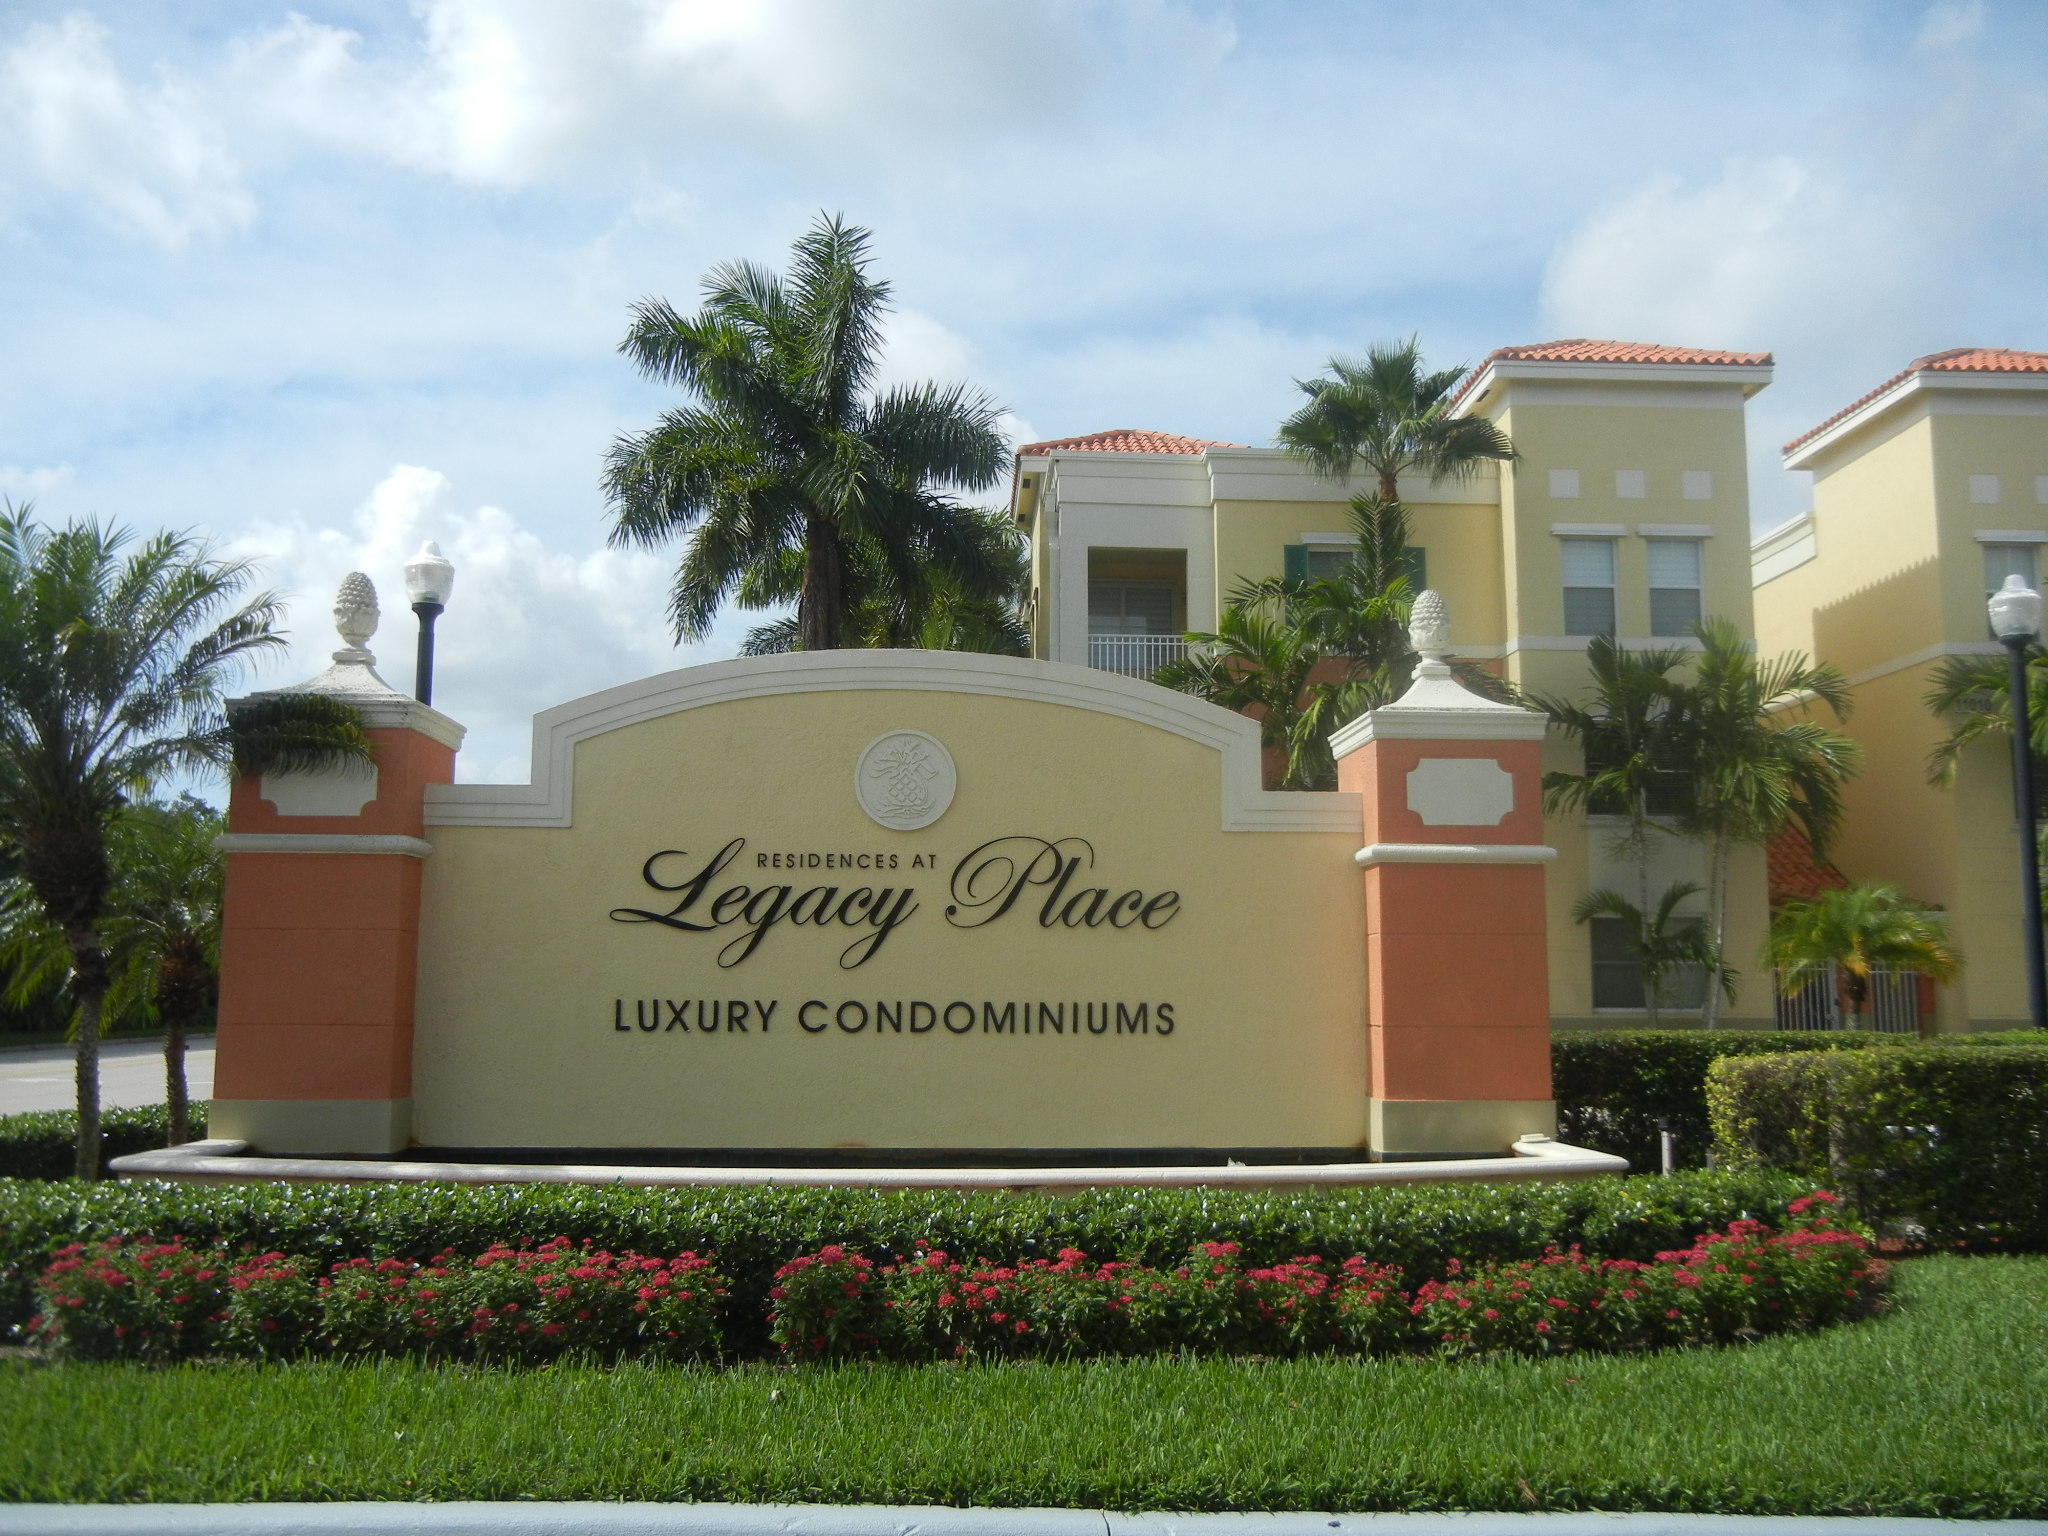 11014 Legacy Drive, Palm Beach Gardens, Florida 33410, 2 Bedrooms Bedrooms, ,2 BathroomsBathrooms,Rental,For Rent,Legacy,RX-10566384